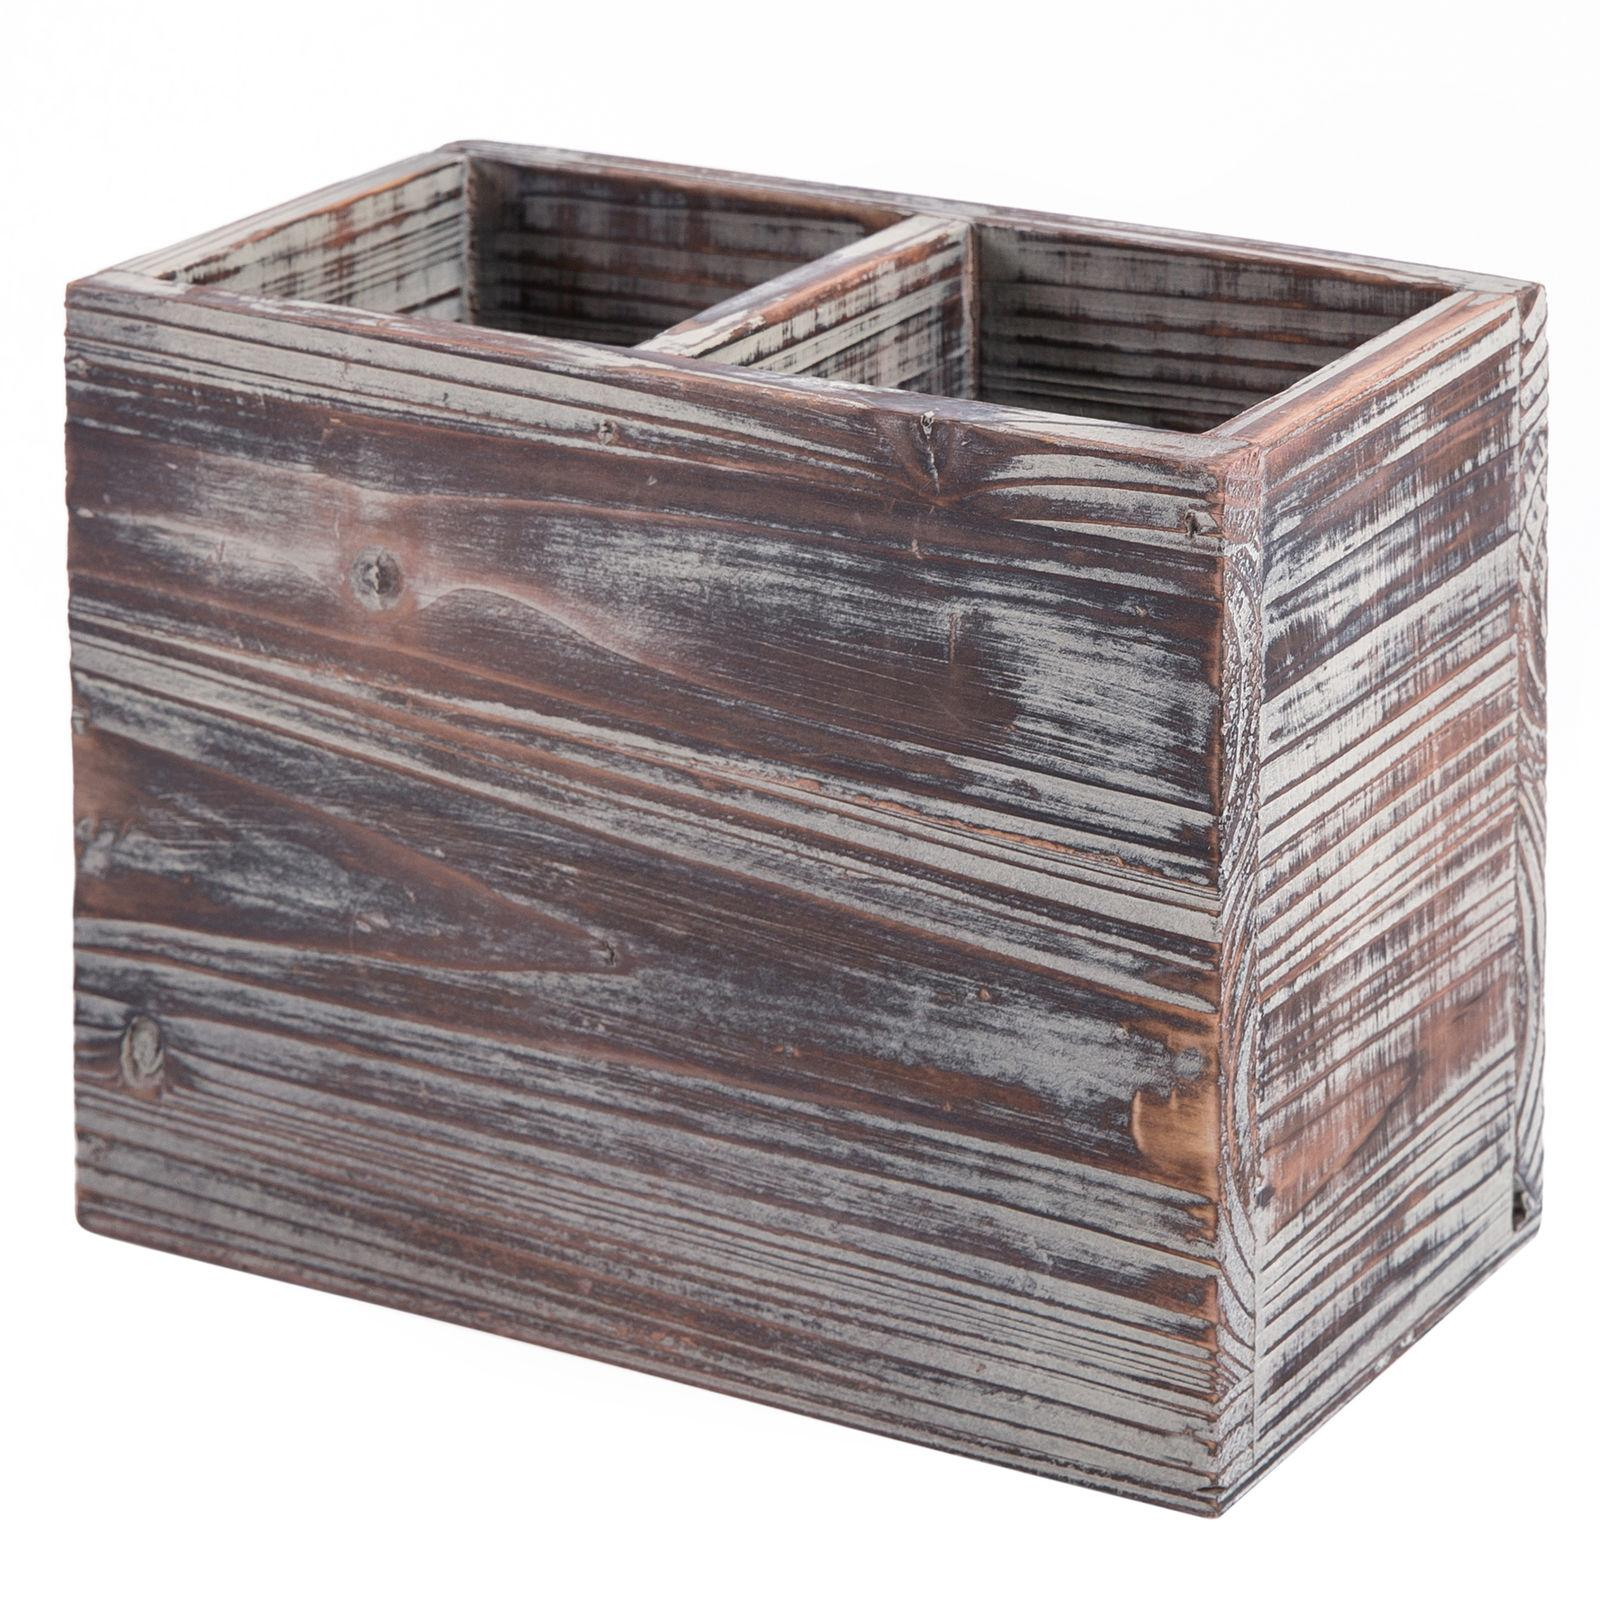 2 Compartment Torched Wood Kitchen Organizer